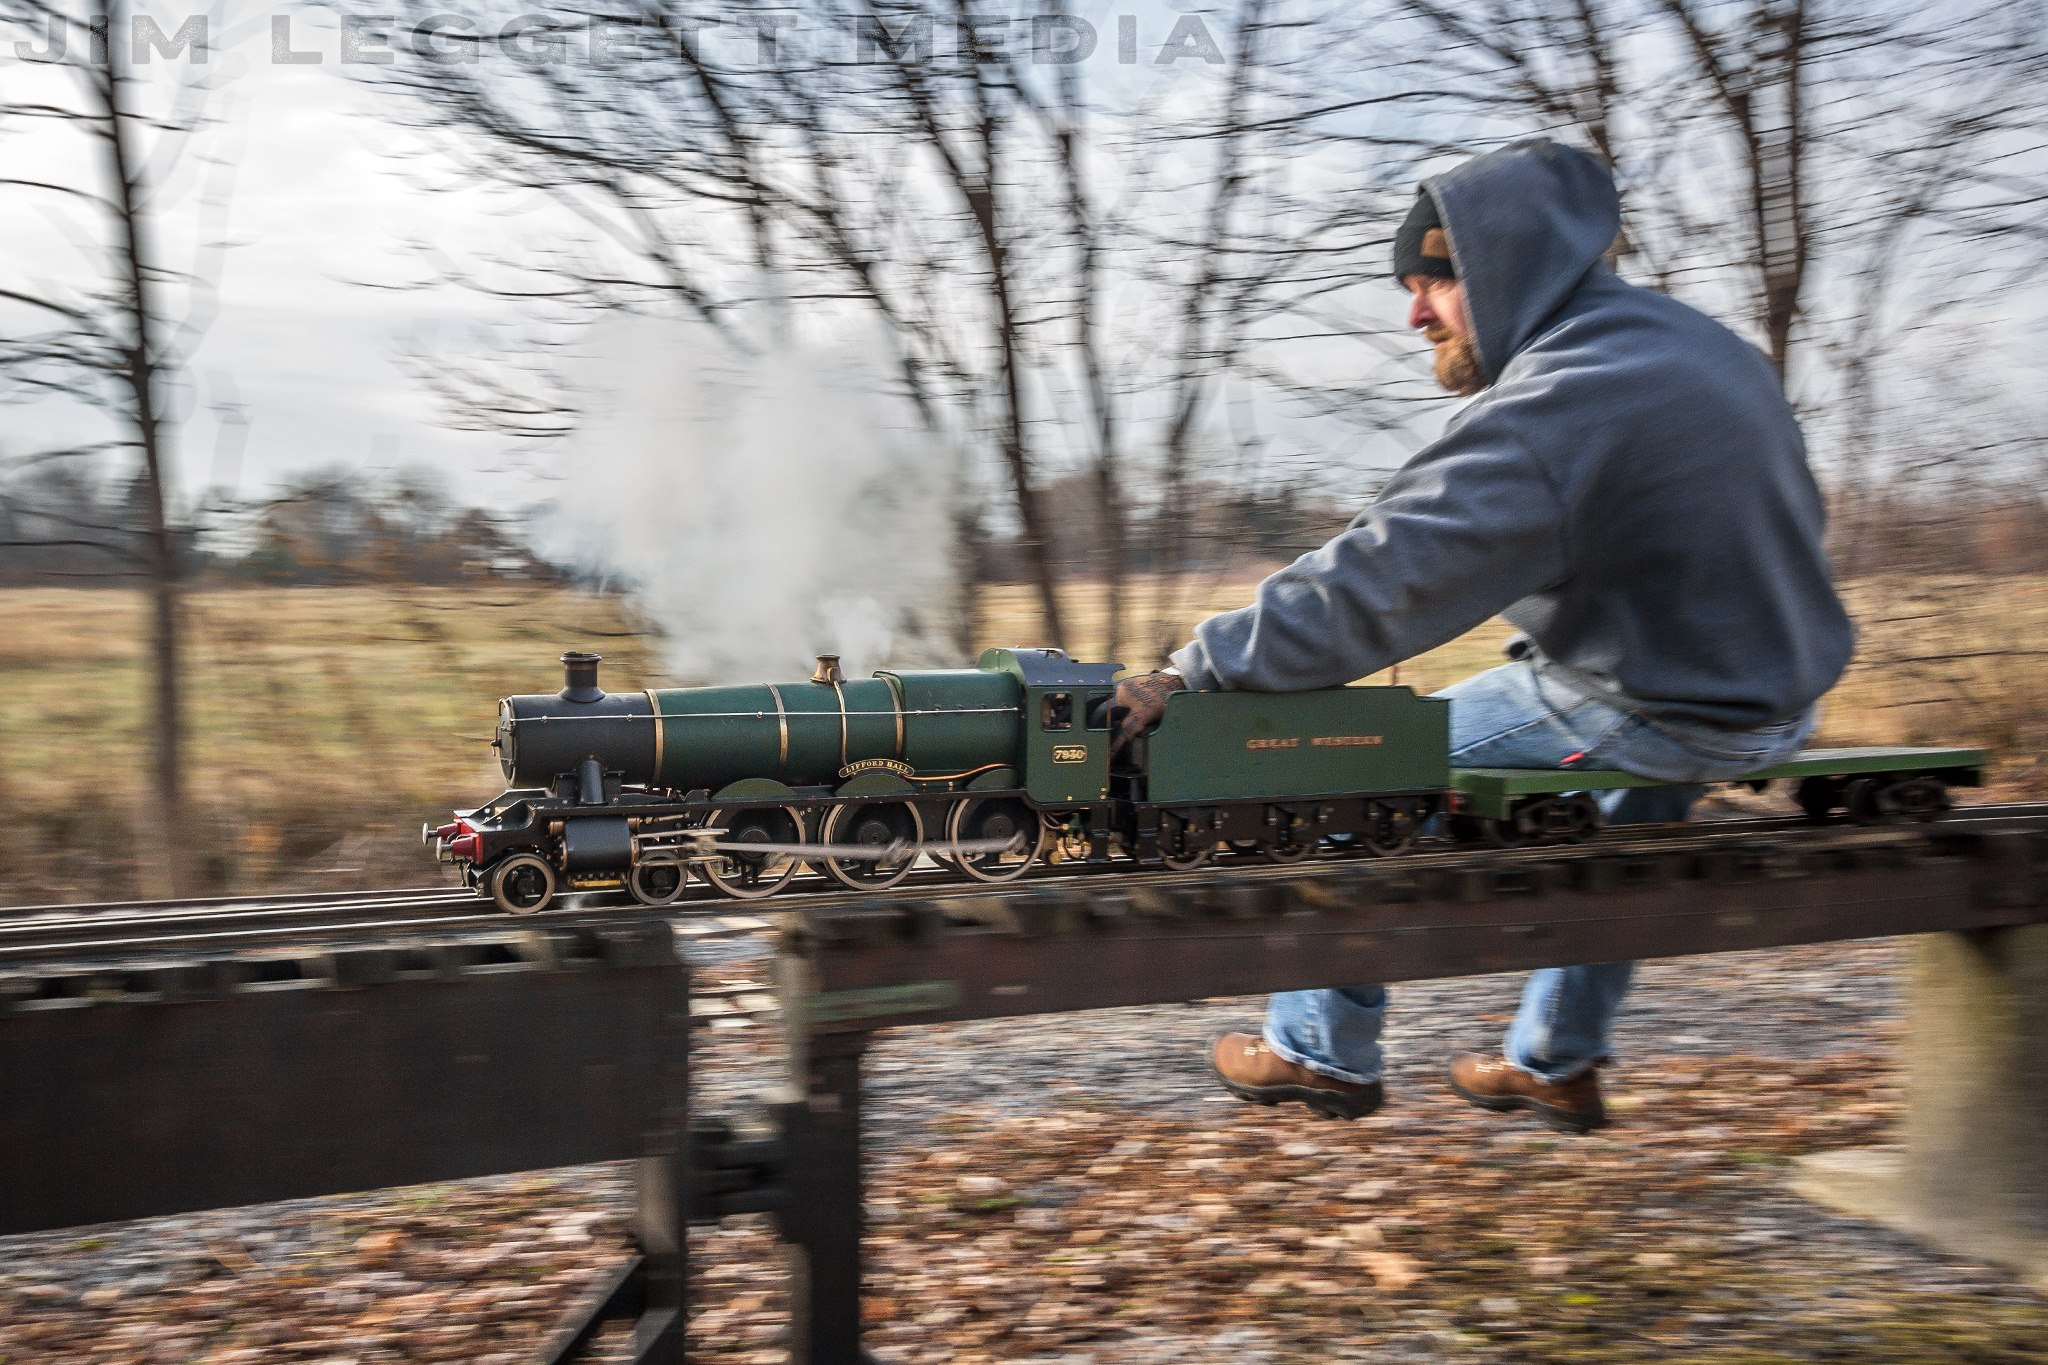 Jeremy at full steam about a model steam locomotive. Photo courtesy of Jim Leggett